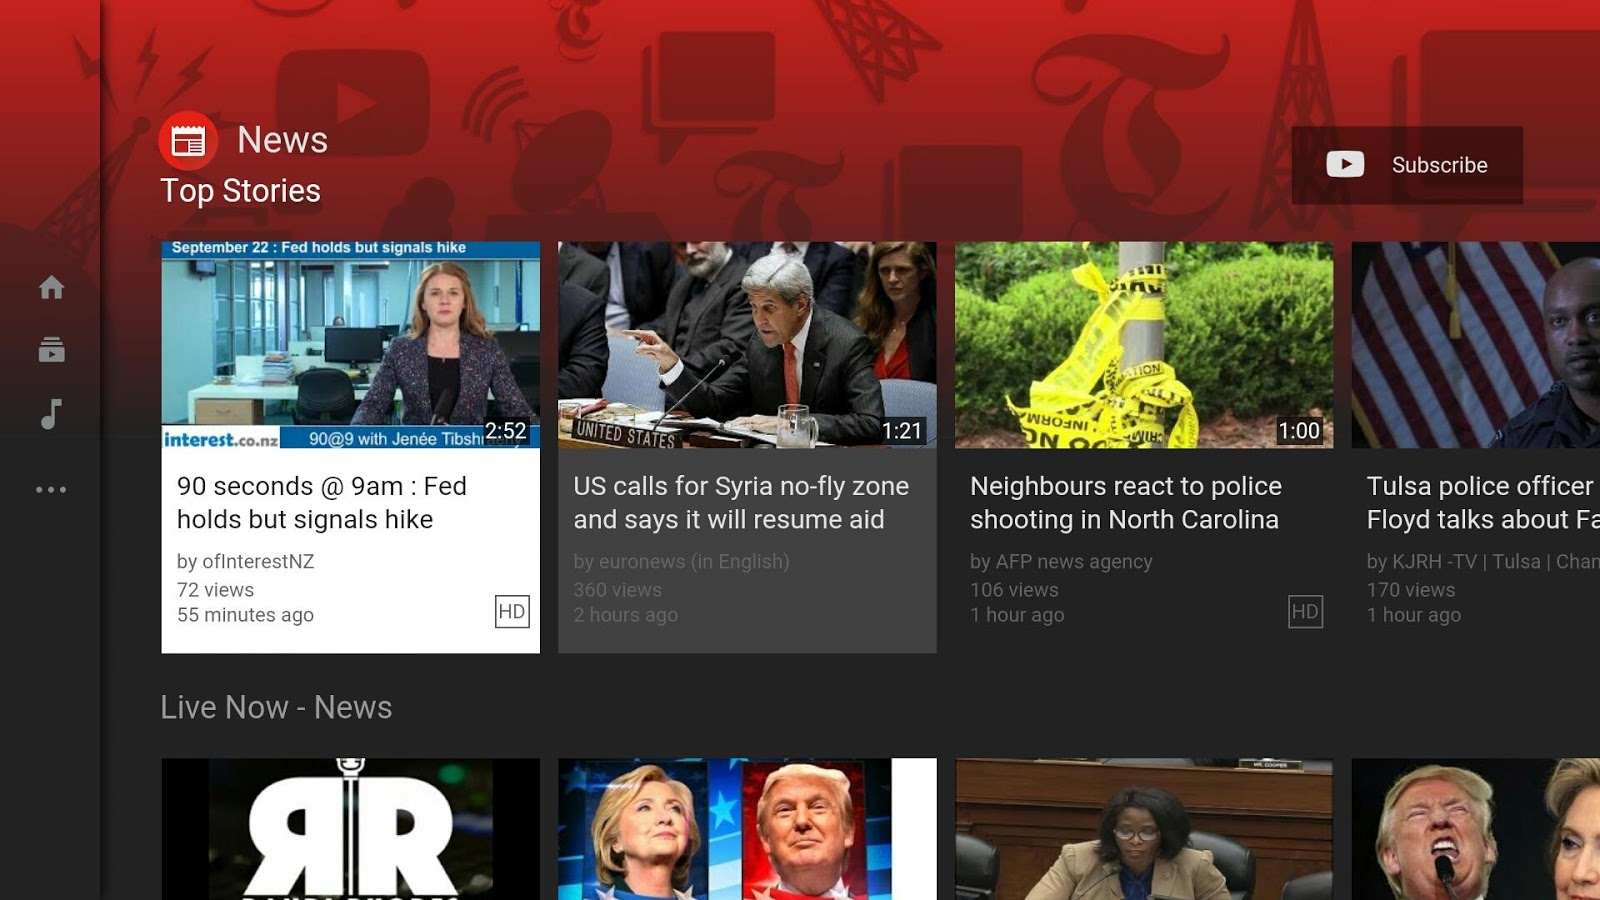 Smart YouTube TV 6 8 2 APK Download - Android Entertainment Apps